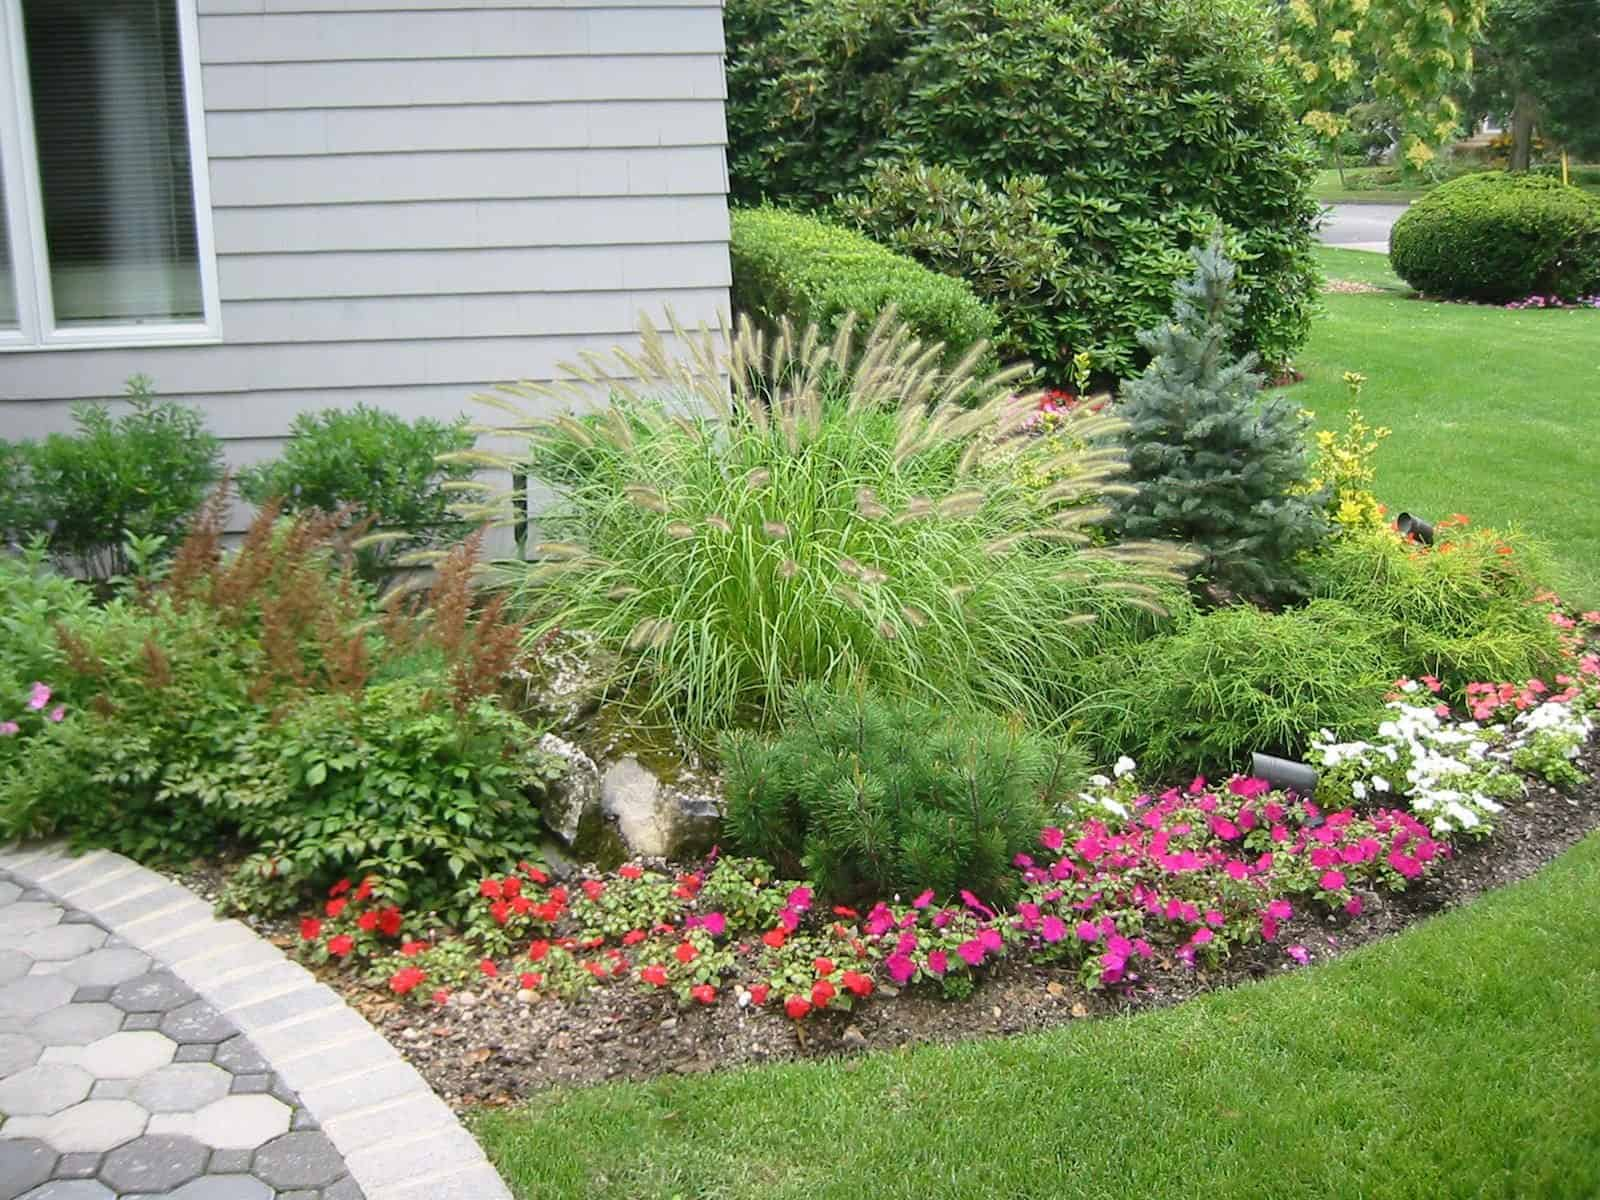 Landscape Plantings - Dwarf Fountain Grass, Baby Blue Eyes Spruce, mixed annuals and perennials - Babylon, Long Island NY